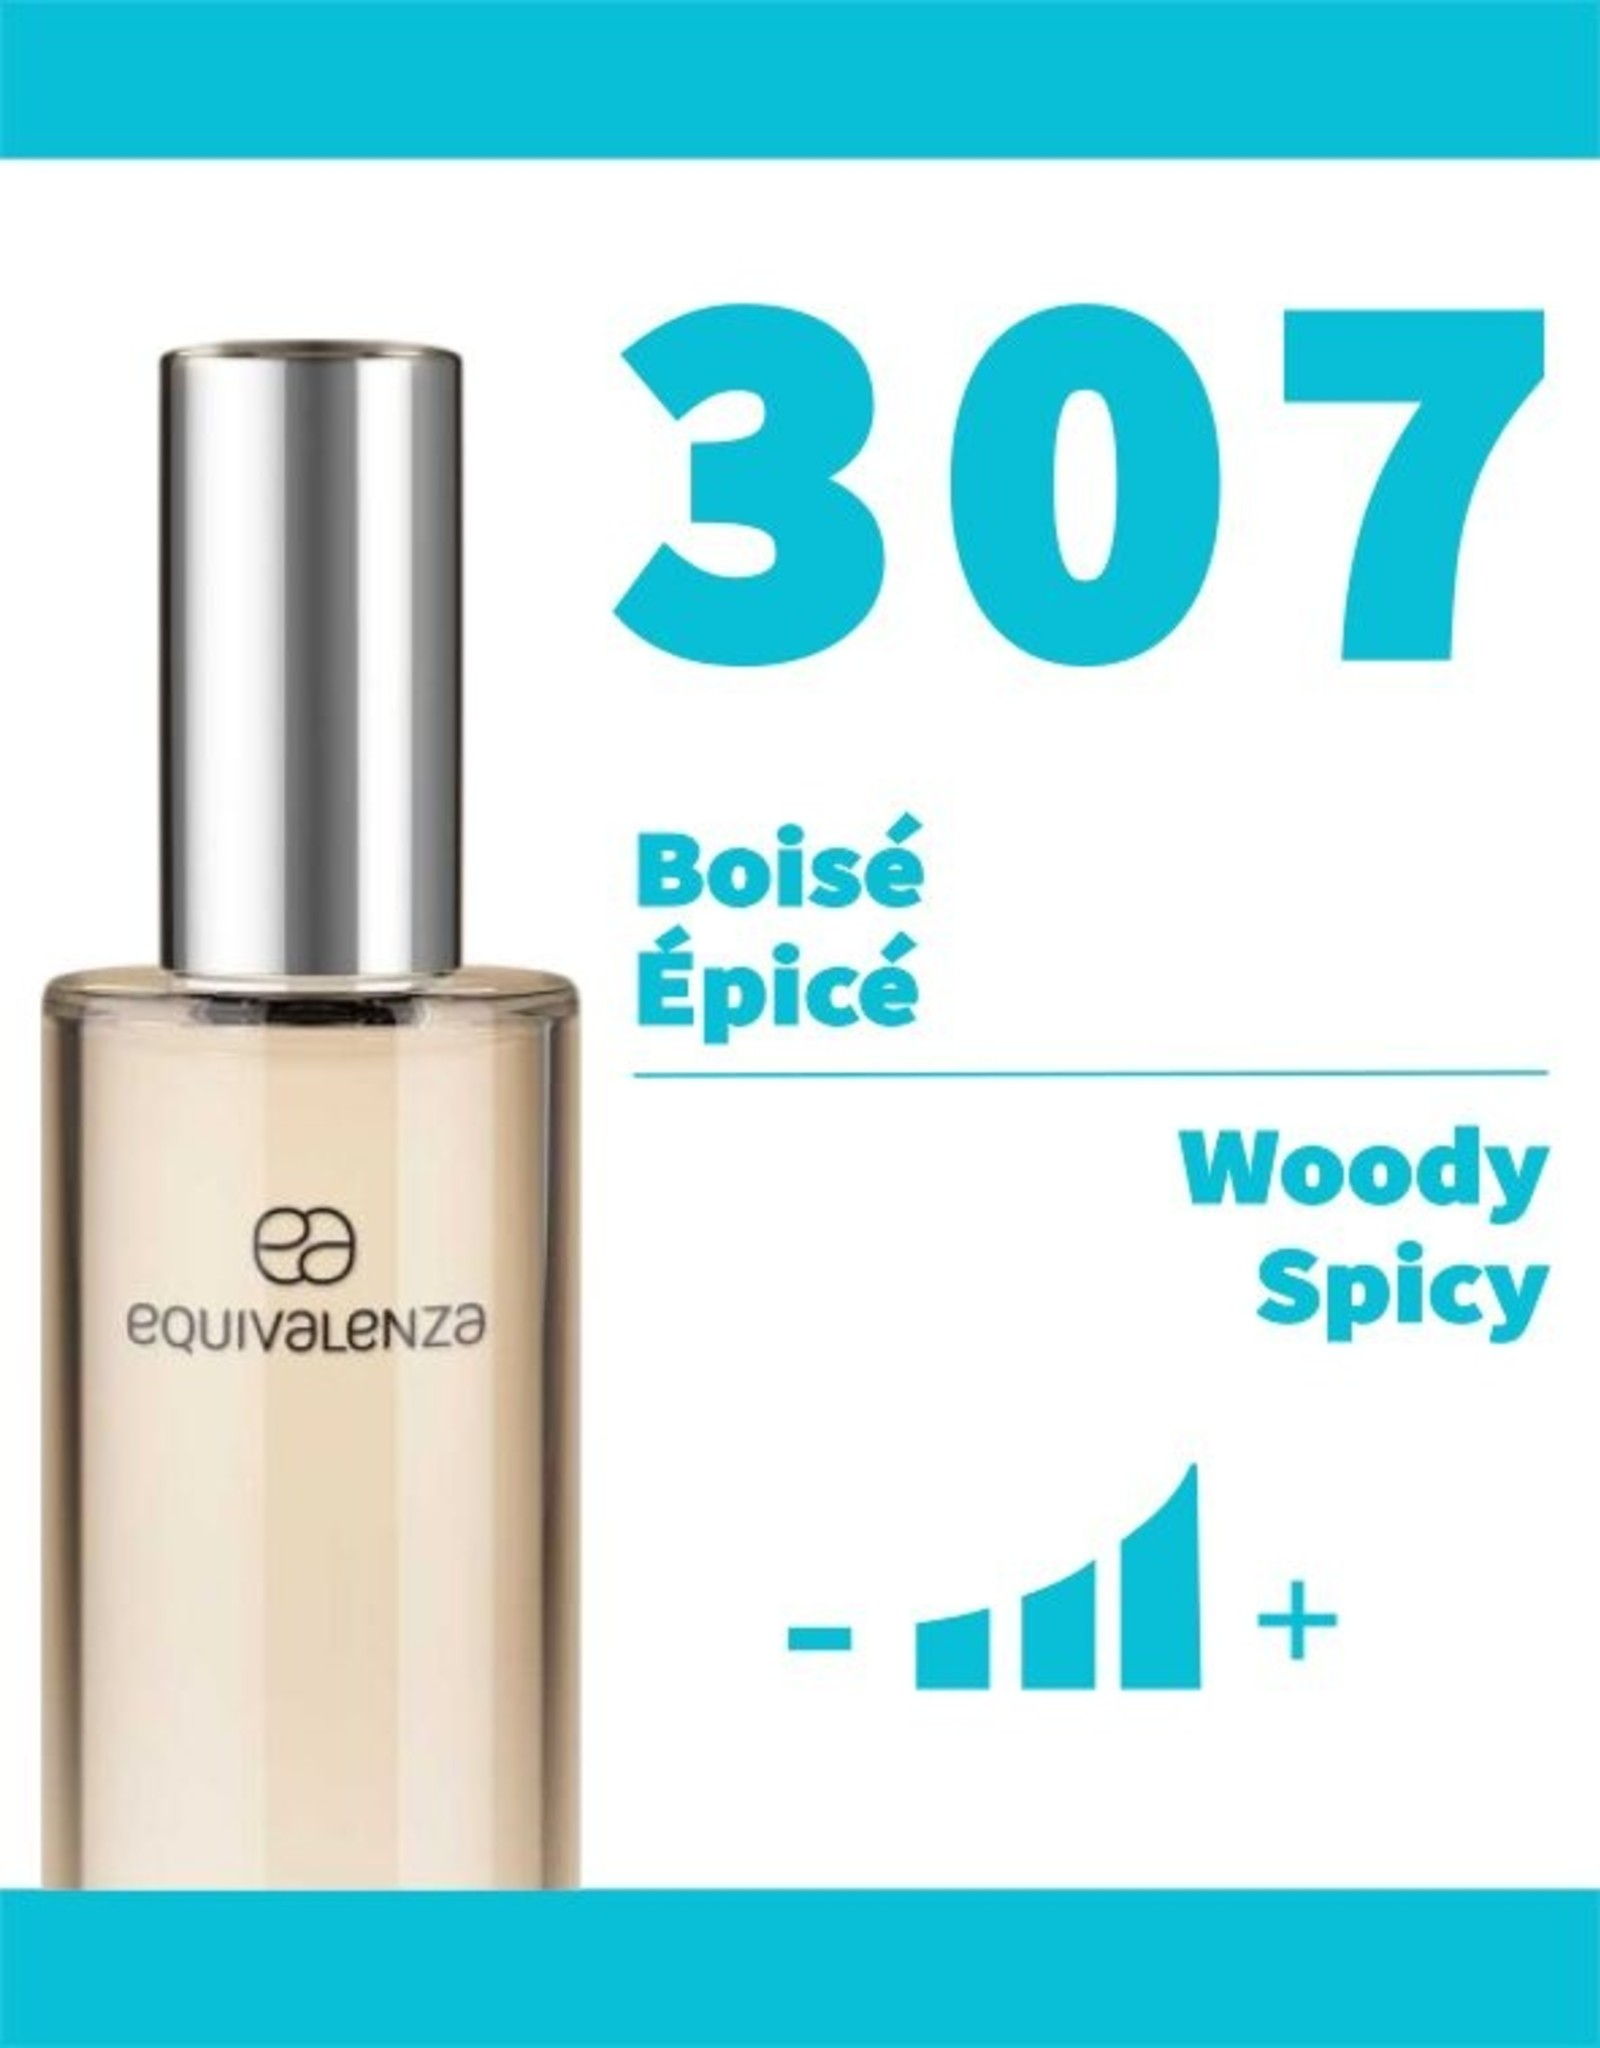 Equivalenza Woody Spicy 307